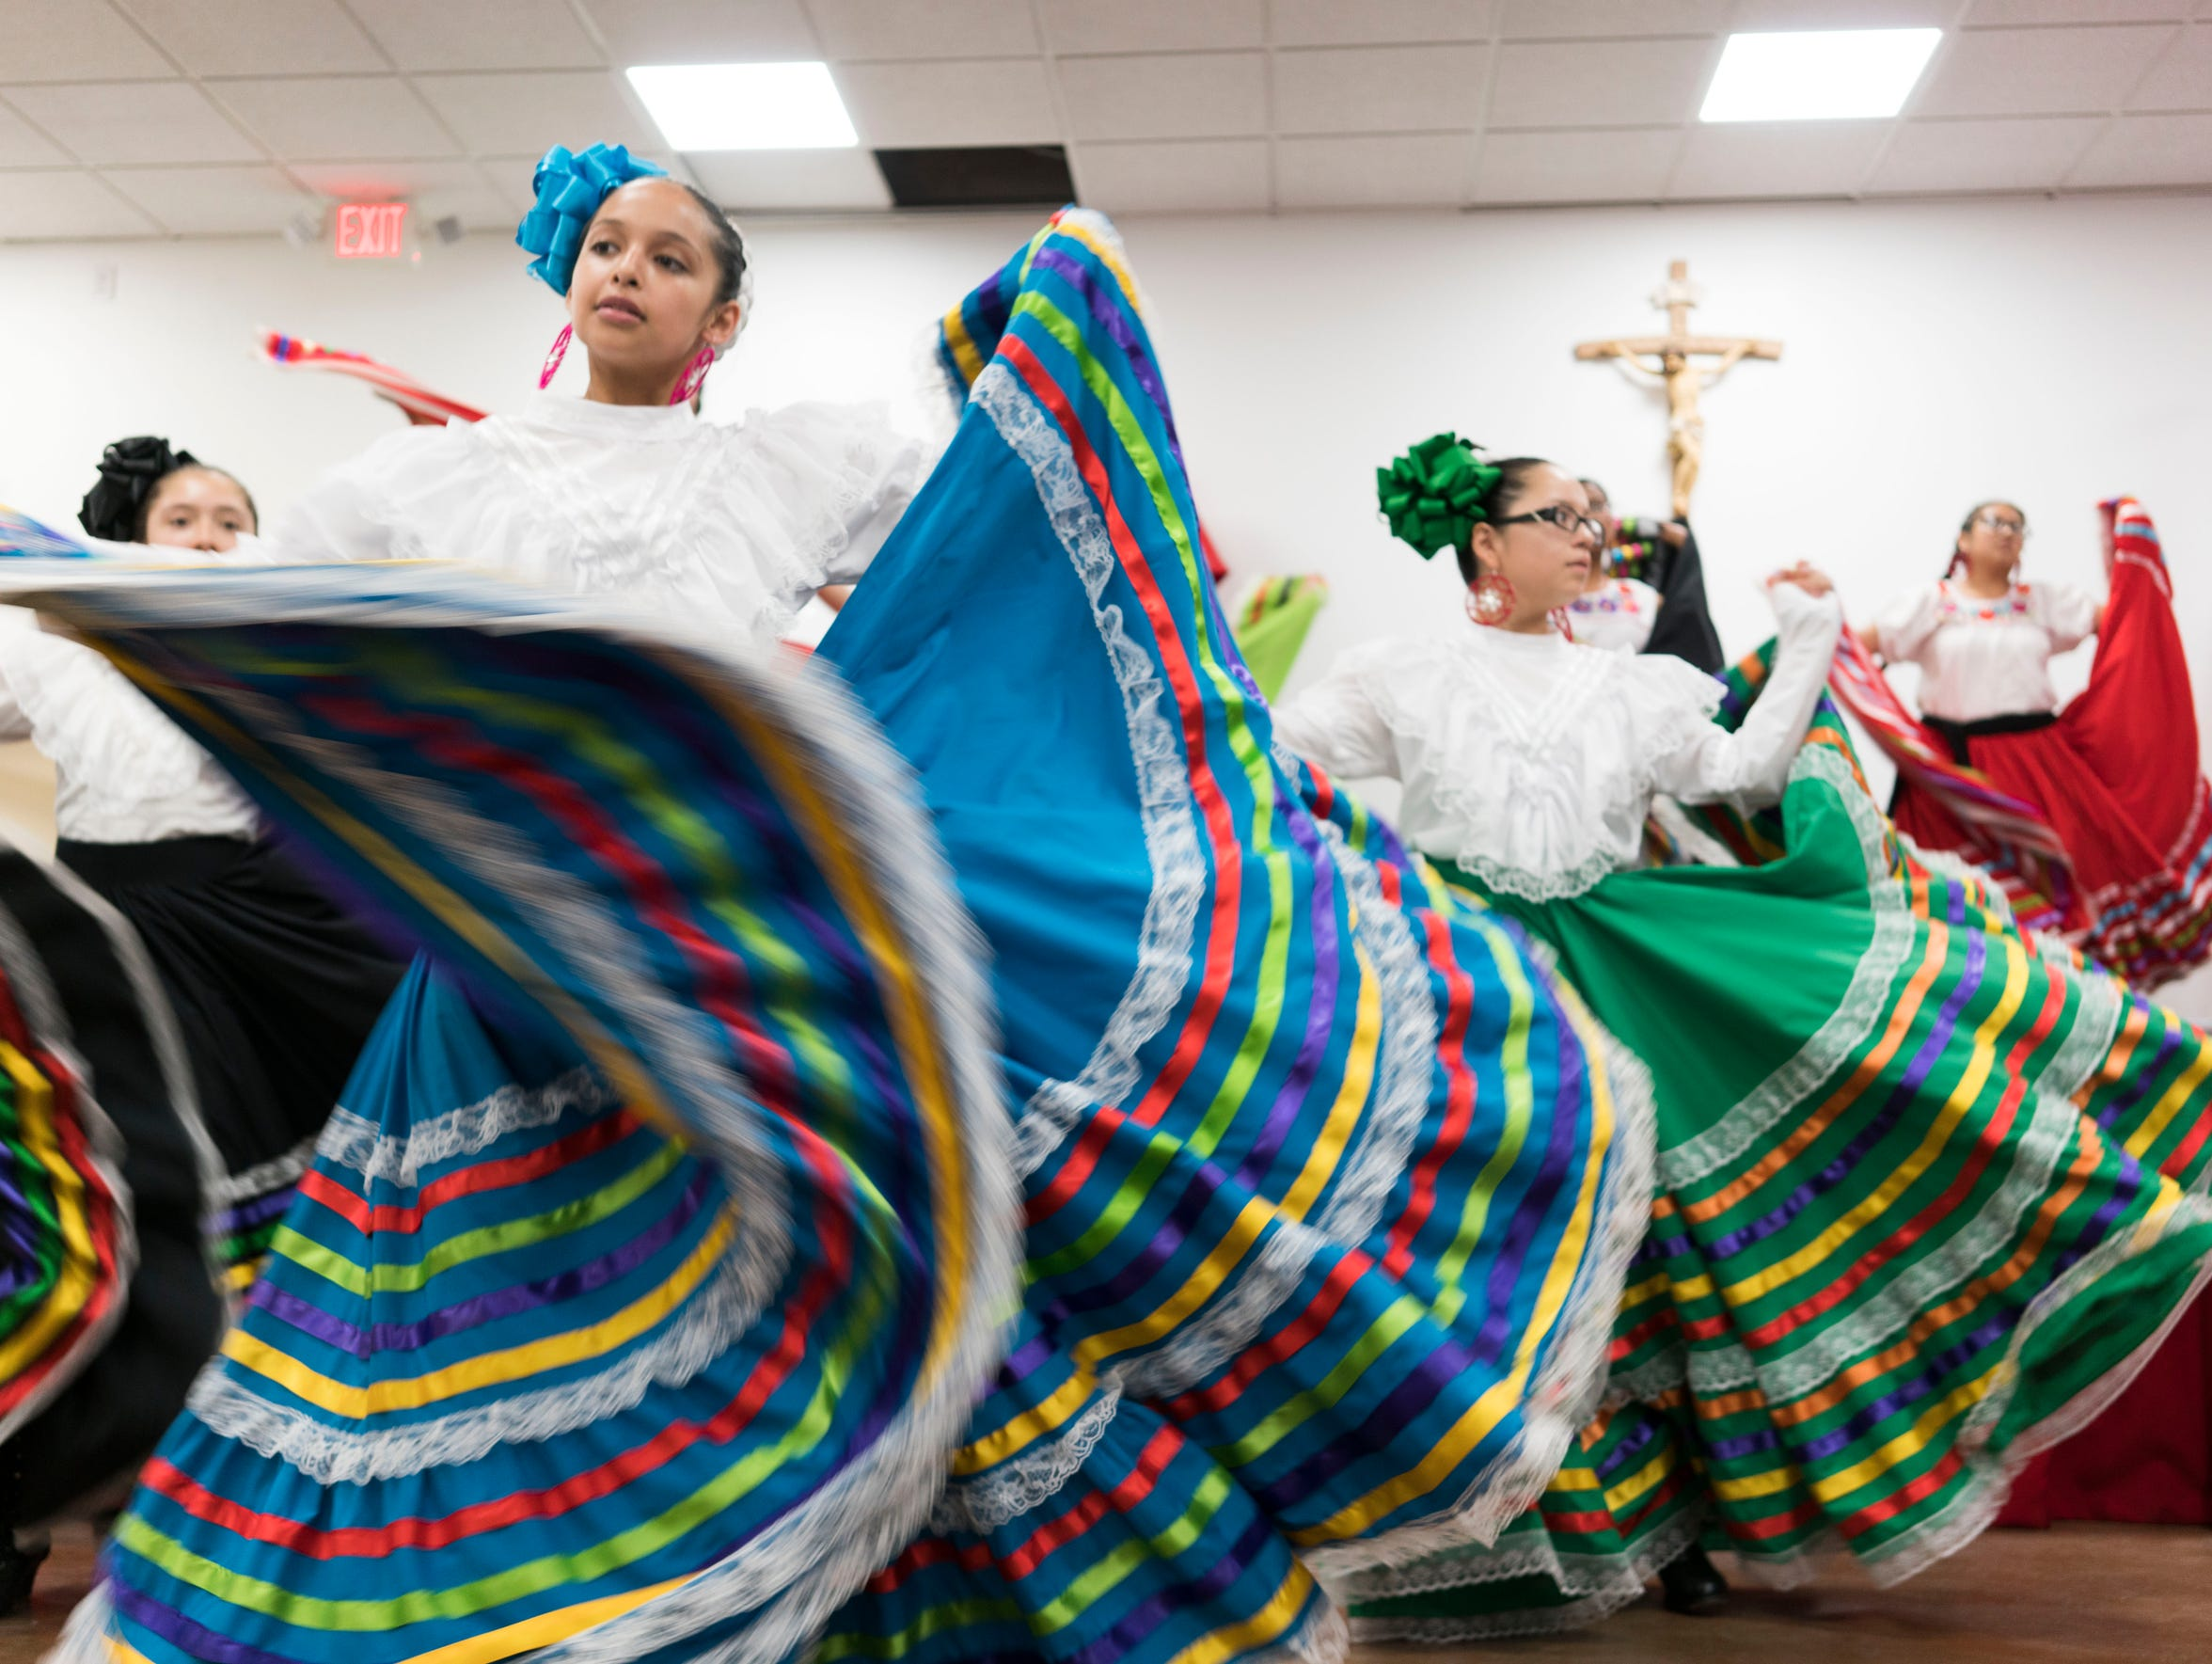 Latino families watch the traditional Mexican Mariachi